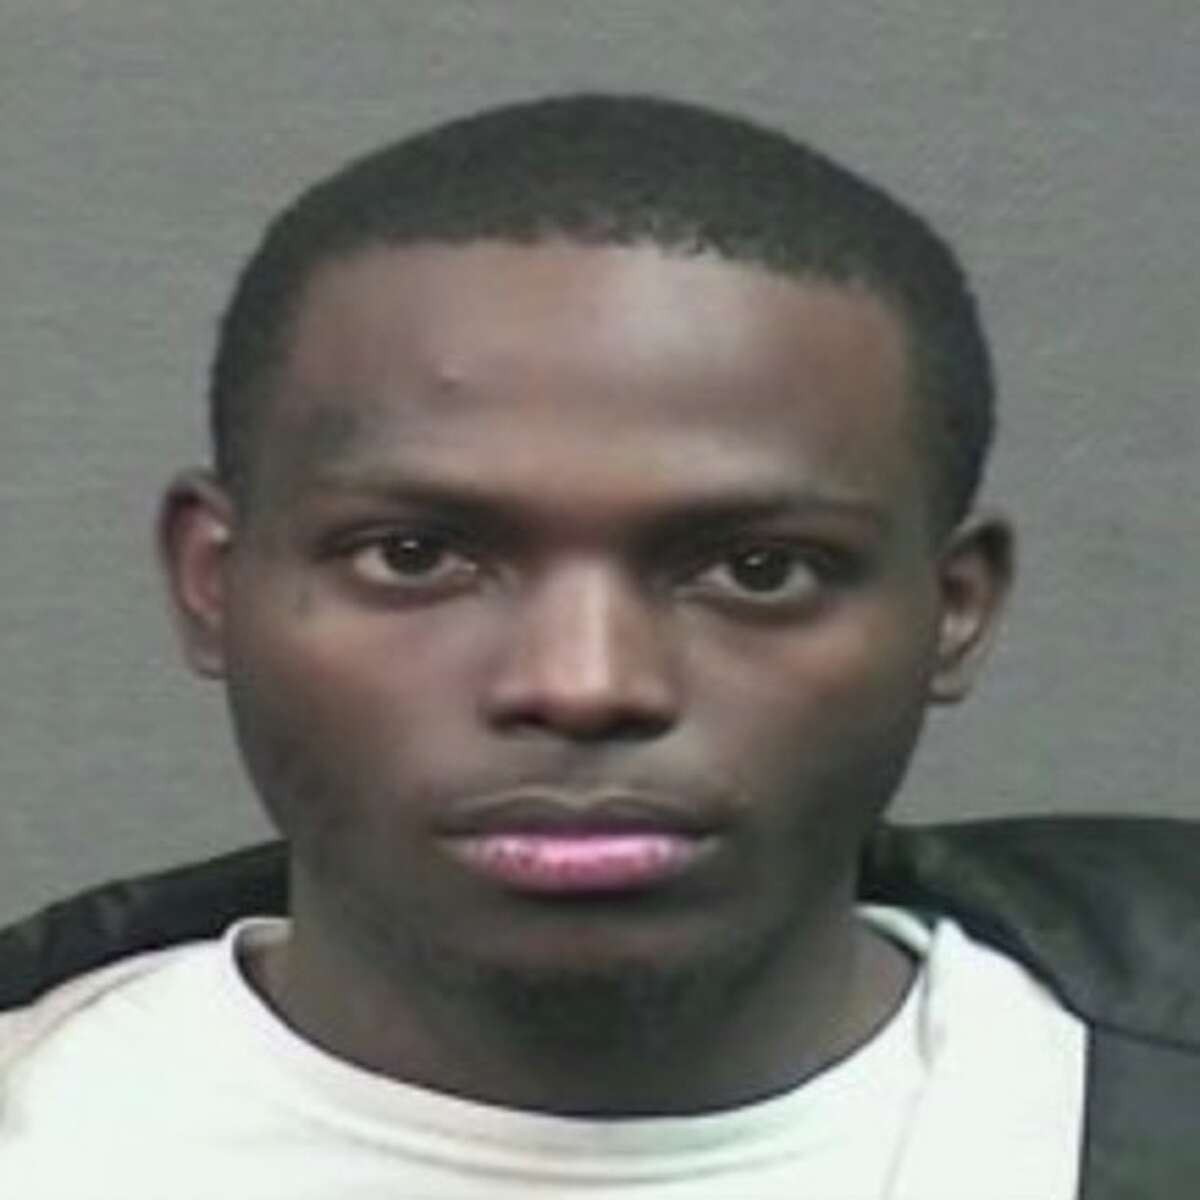 Damarcus Carter, 22, is accused ofstealing more than $300,000 worth of jewelry from a Zales store inside the Willowbrook Mall on Monday, Feb. 25, 2019.